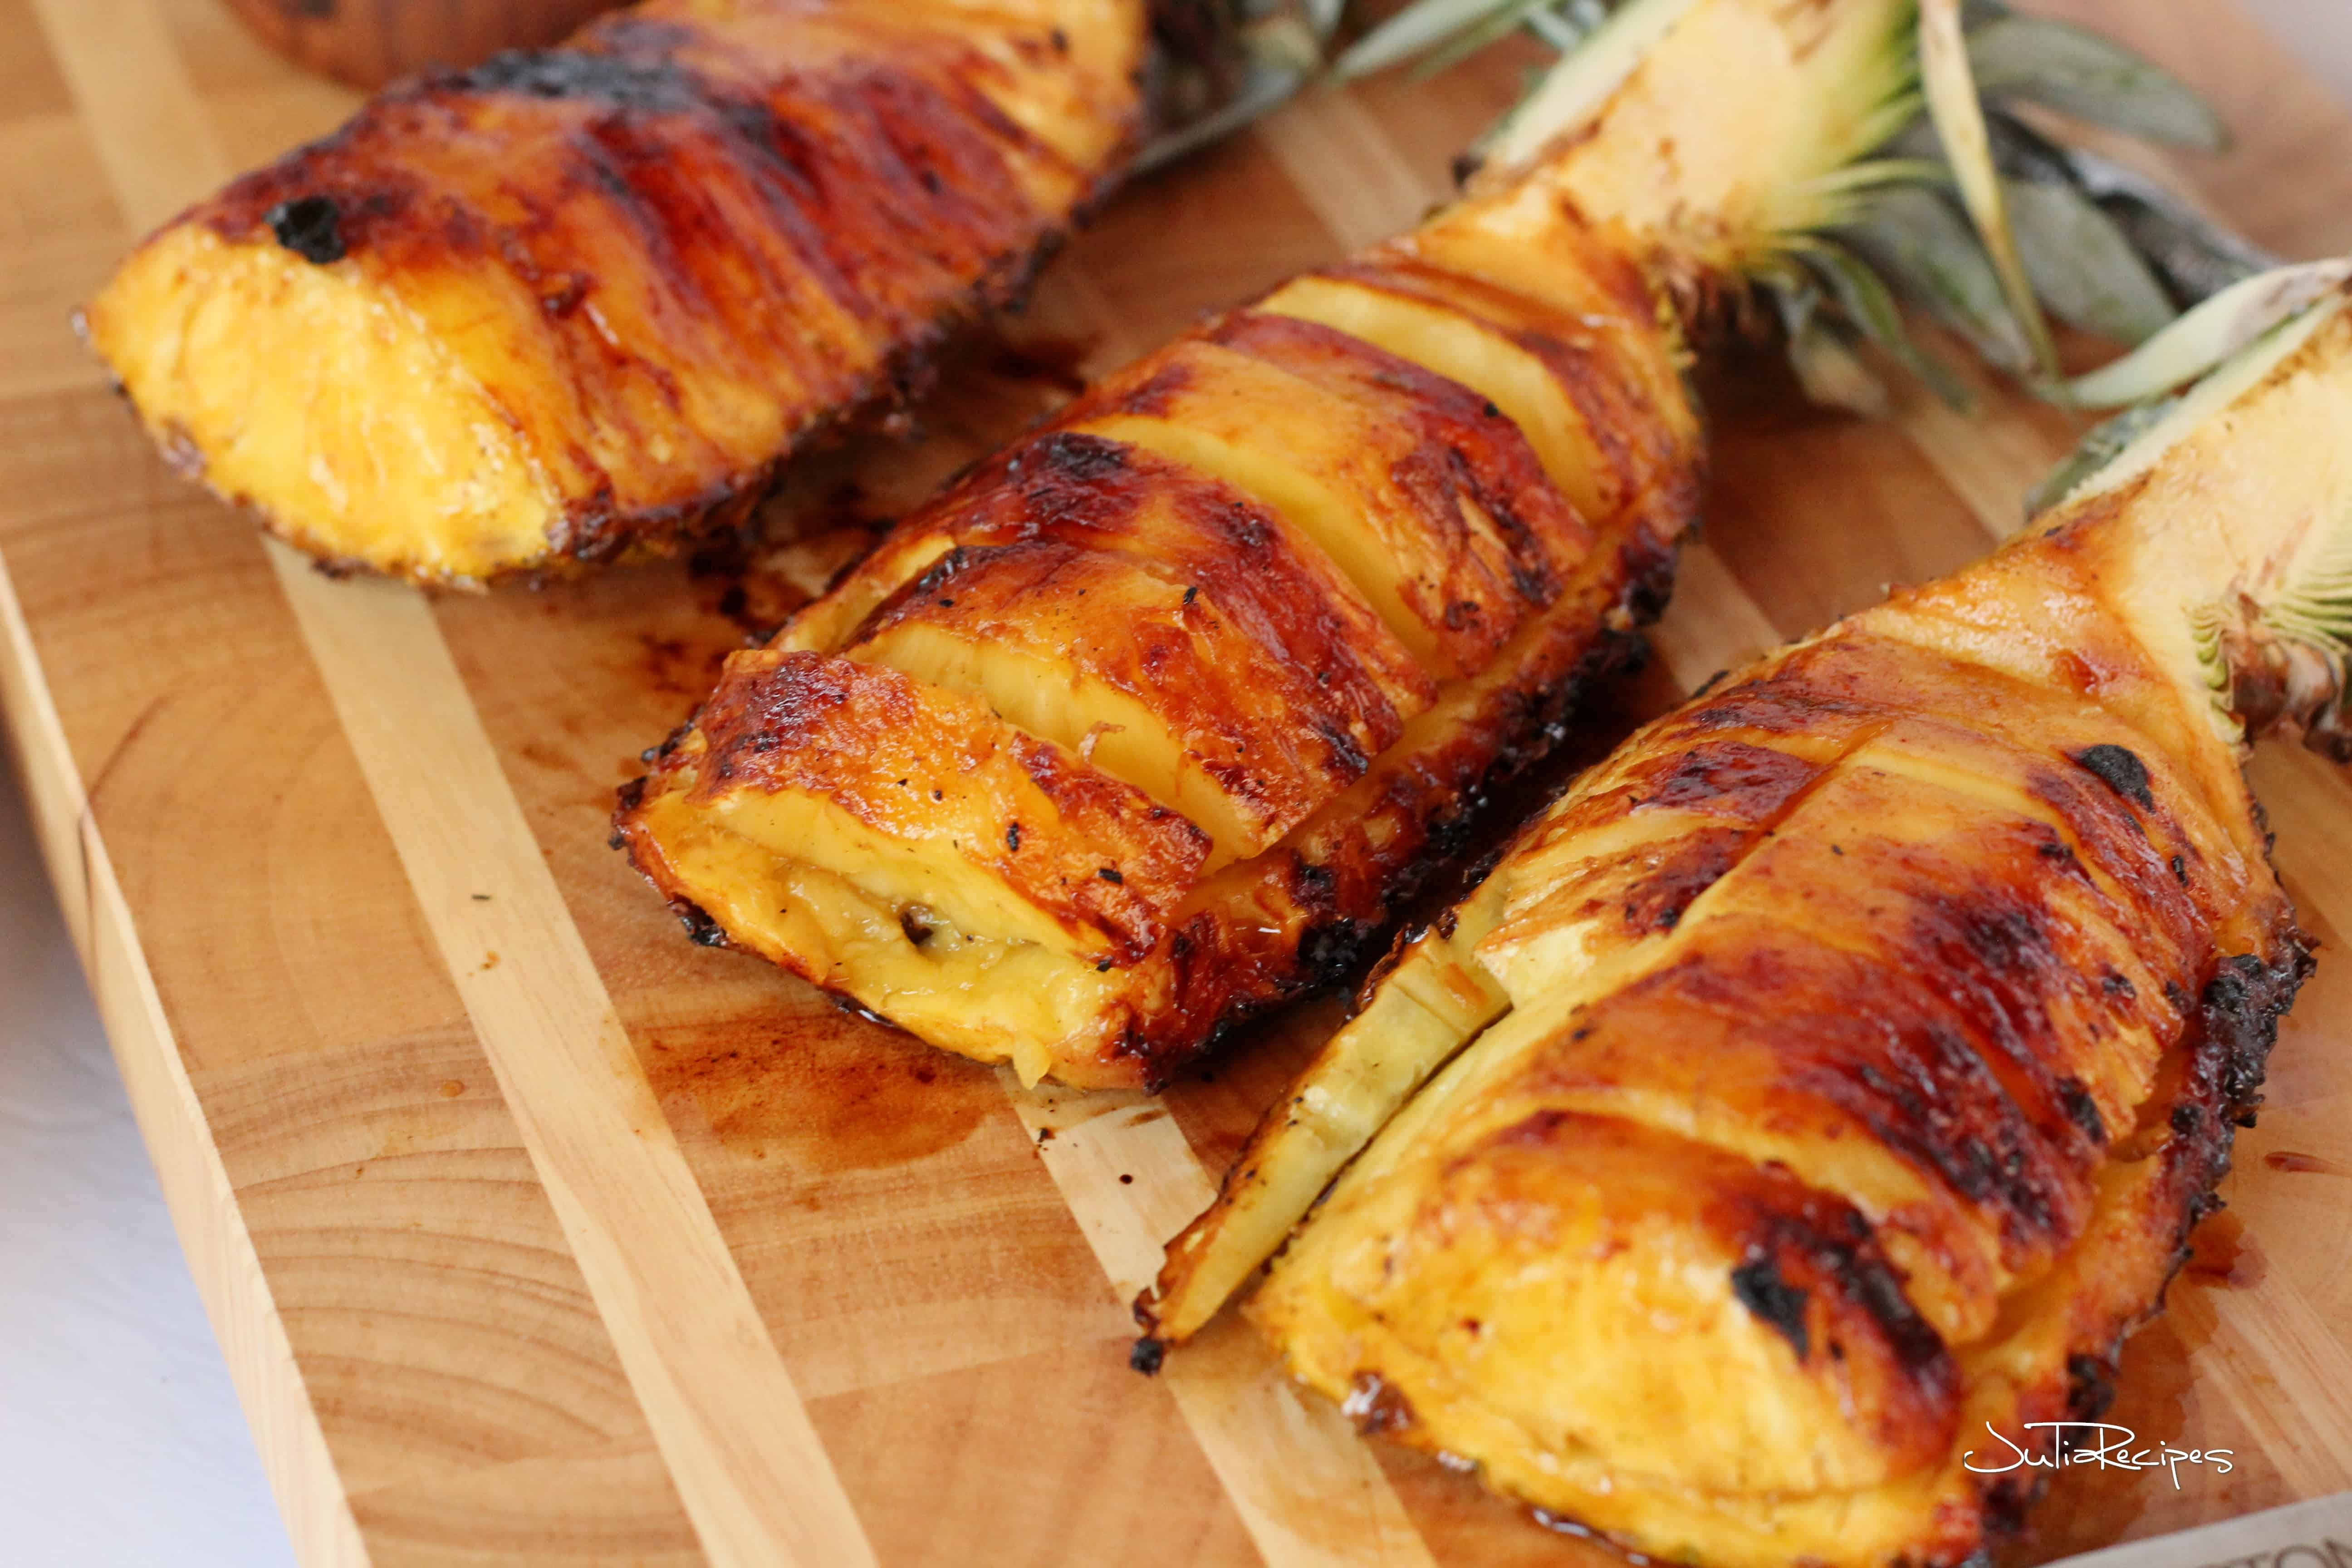 Grilled pineapple on wooden board